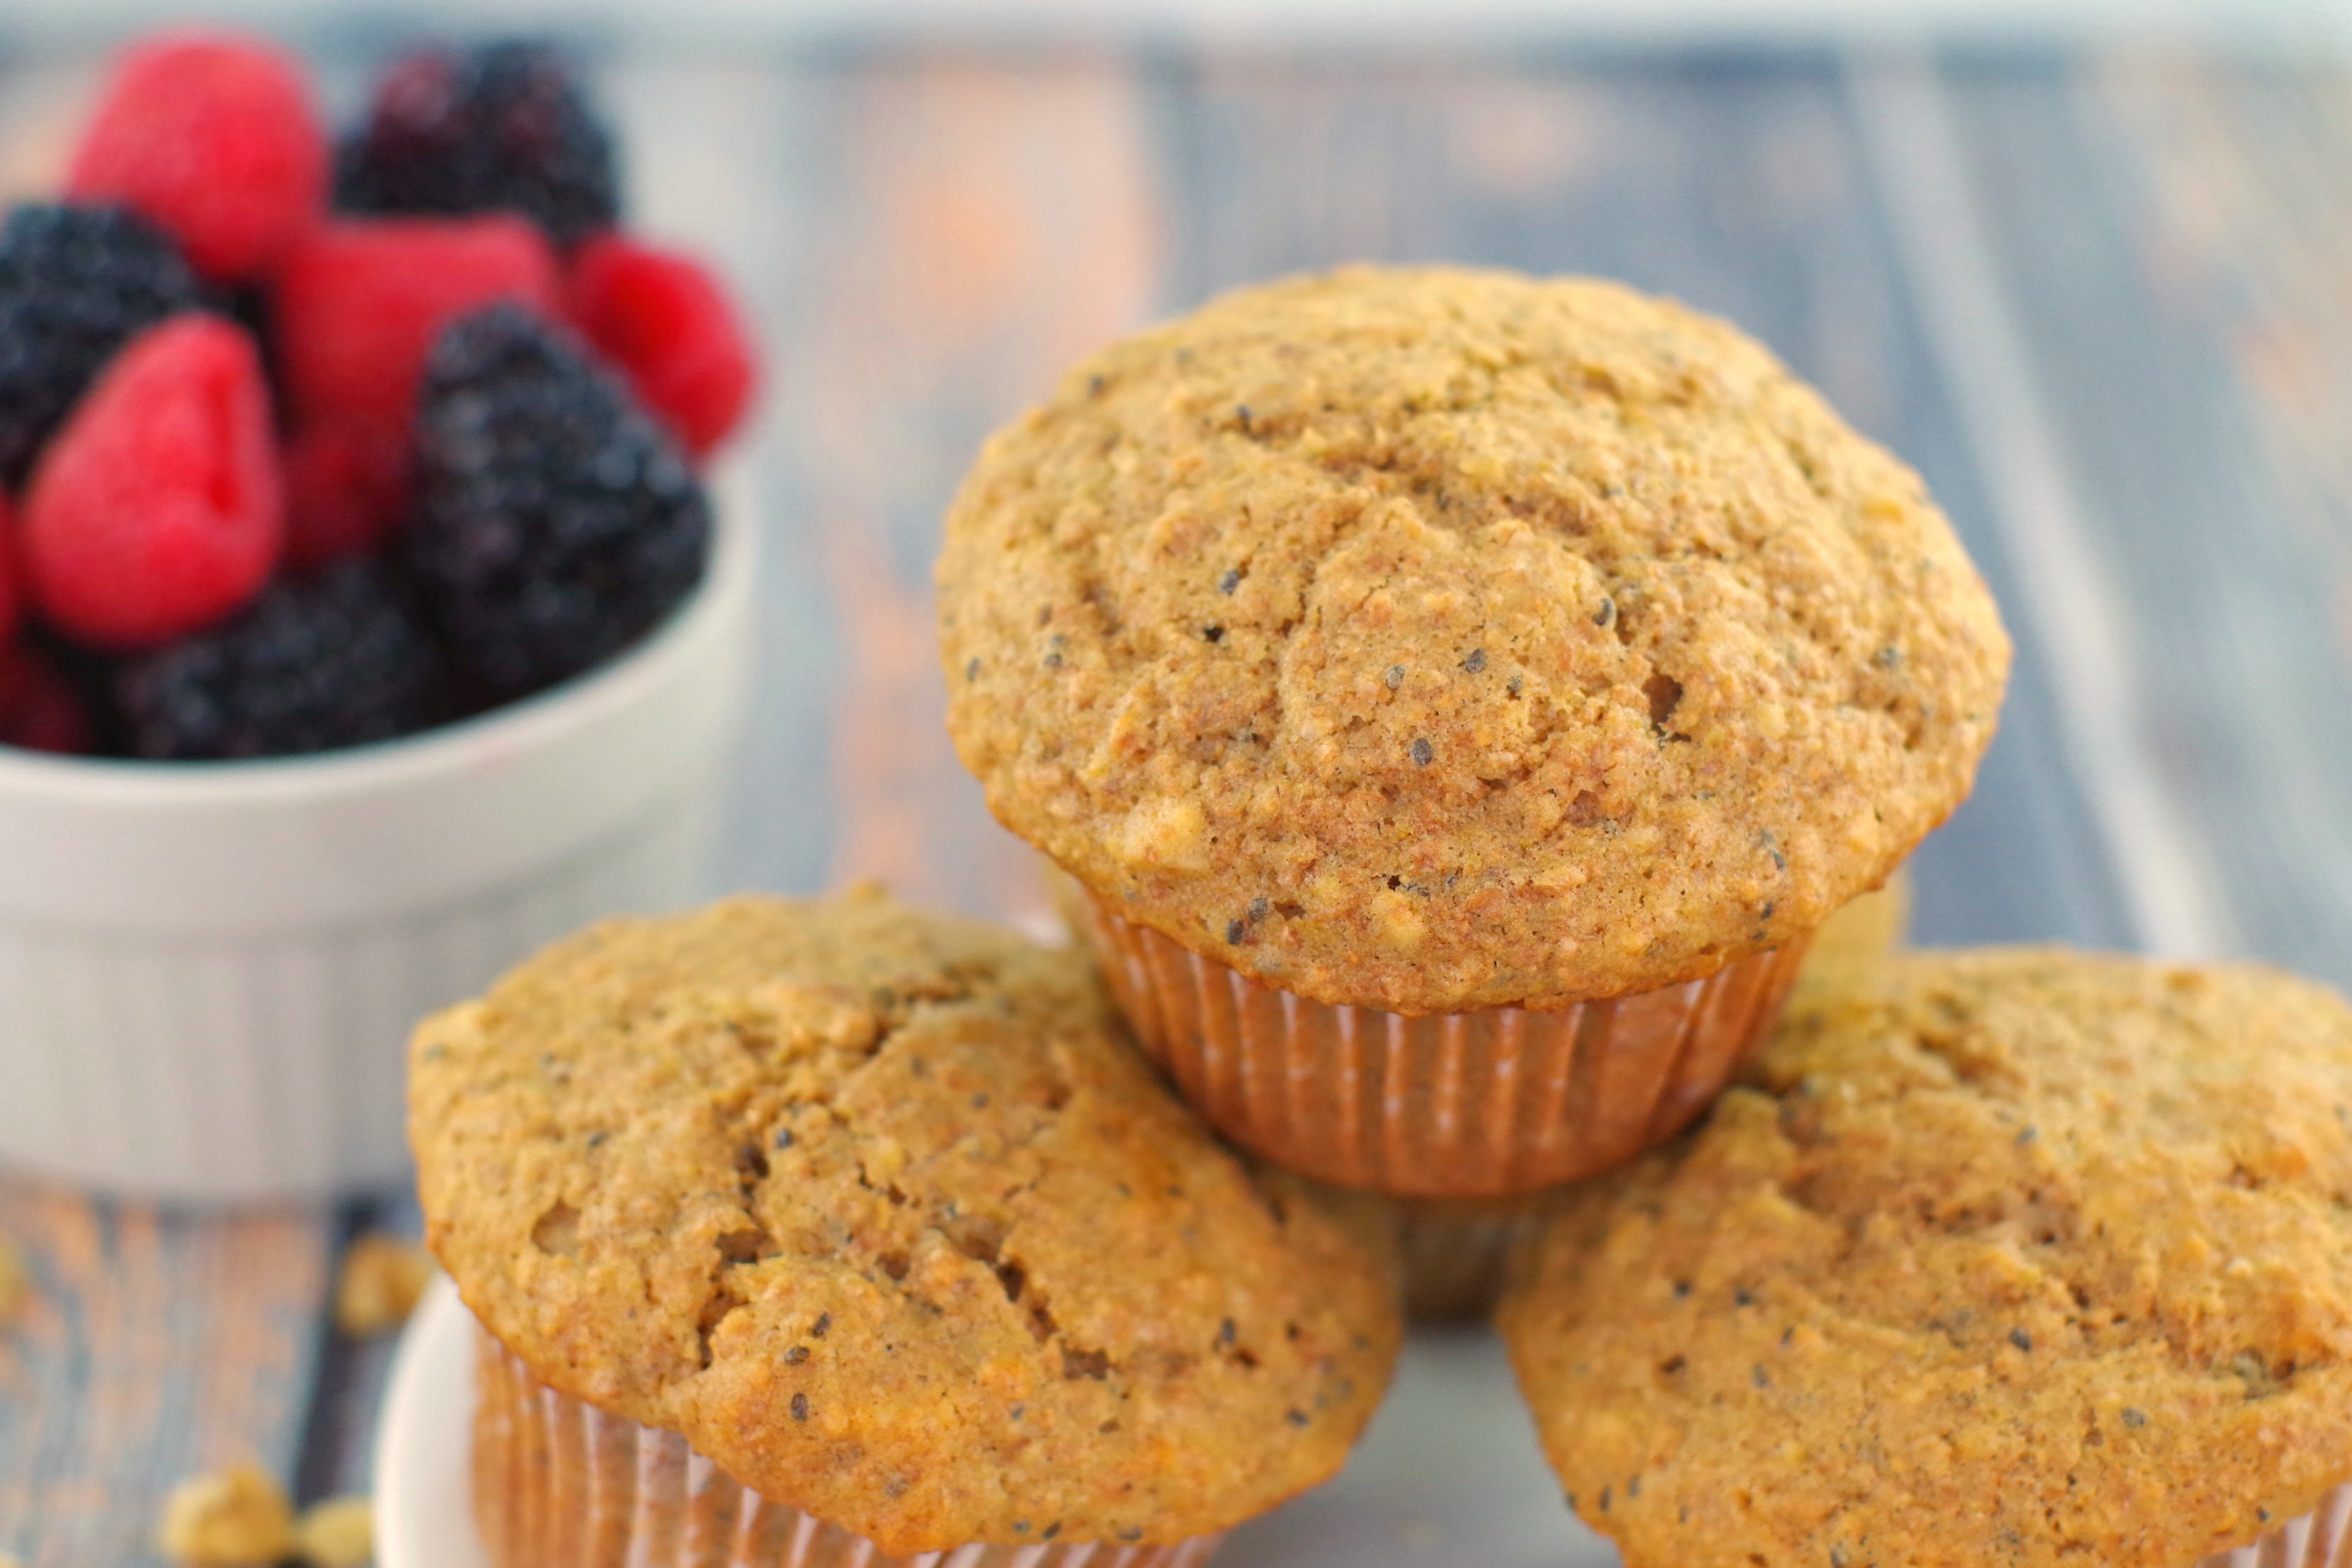 walnut-bran-muffin-recipe